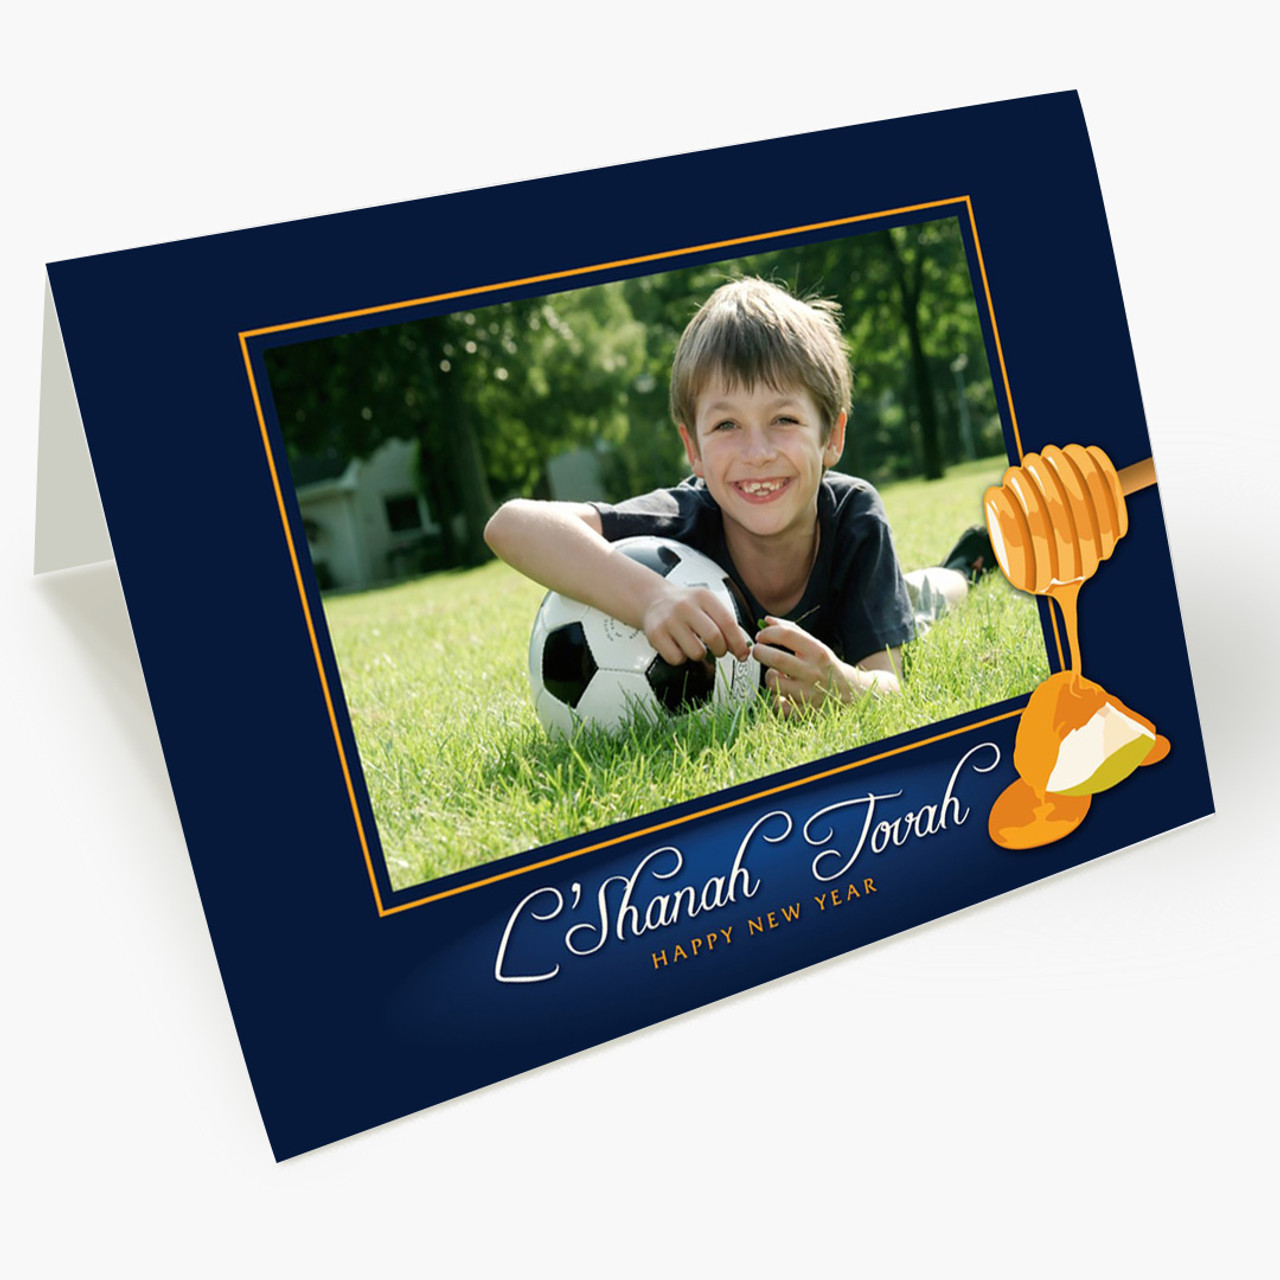 L'Shanah Tovah Photo Card